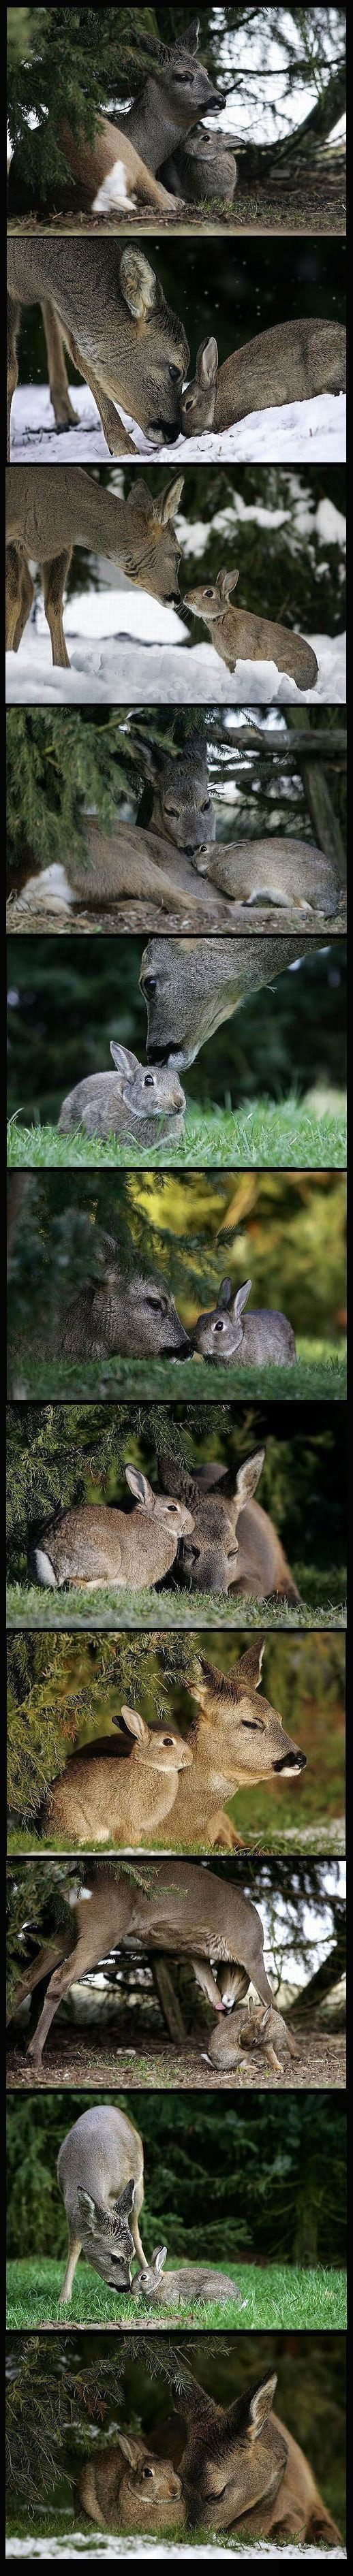 the real life bambi and thumper meet